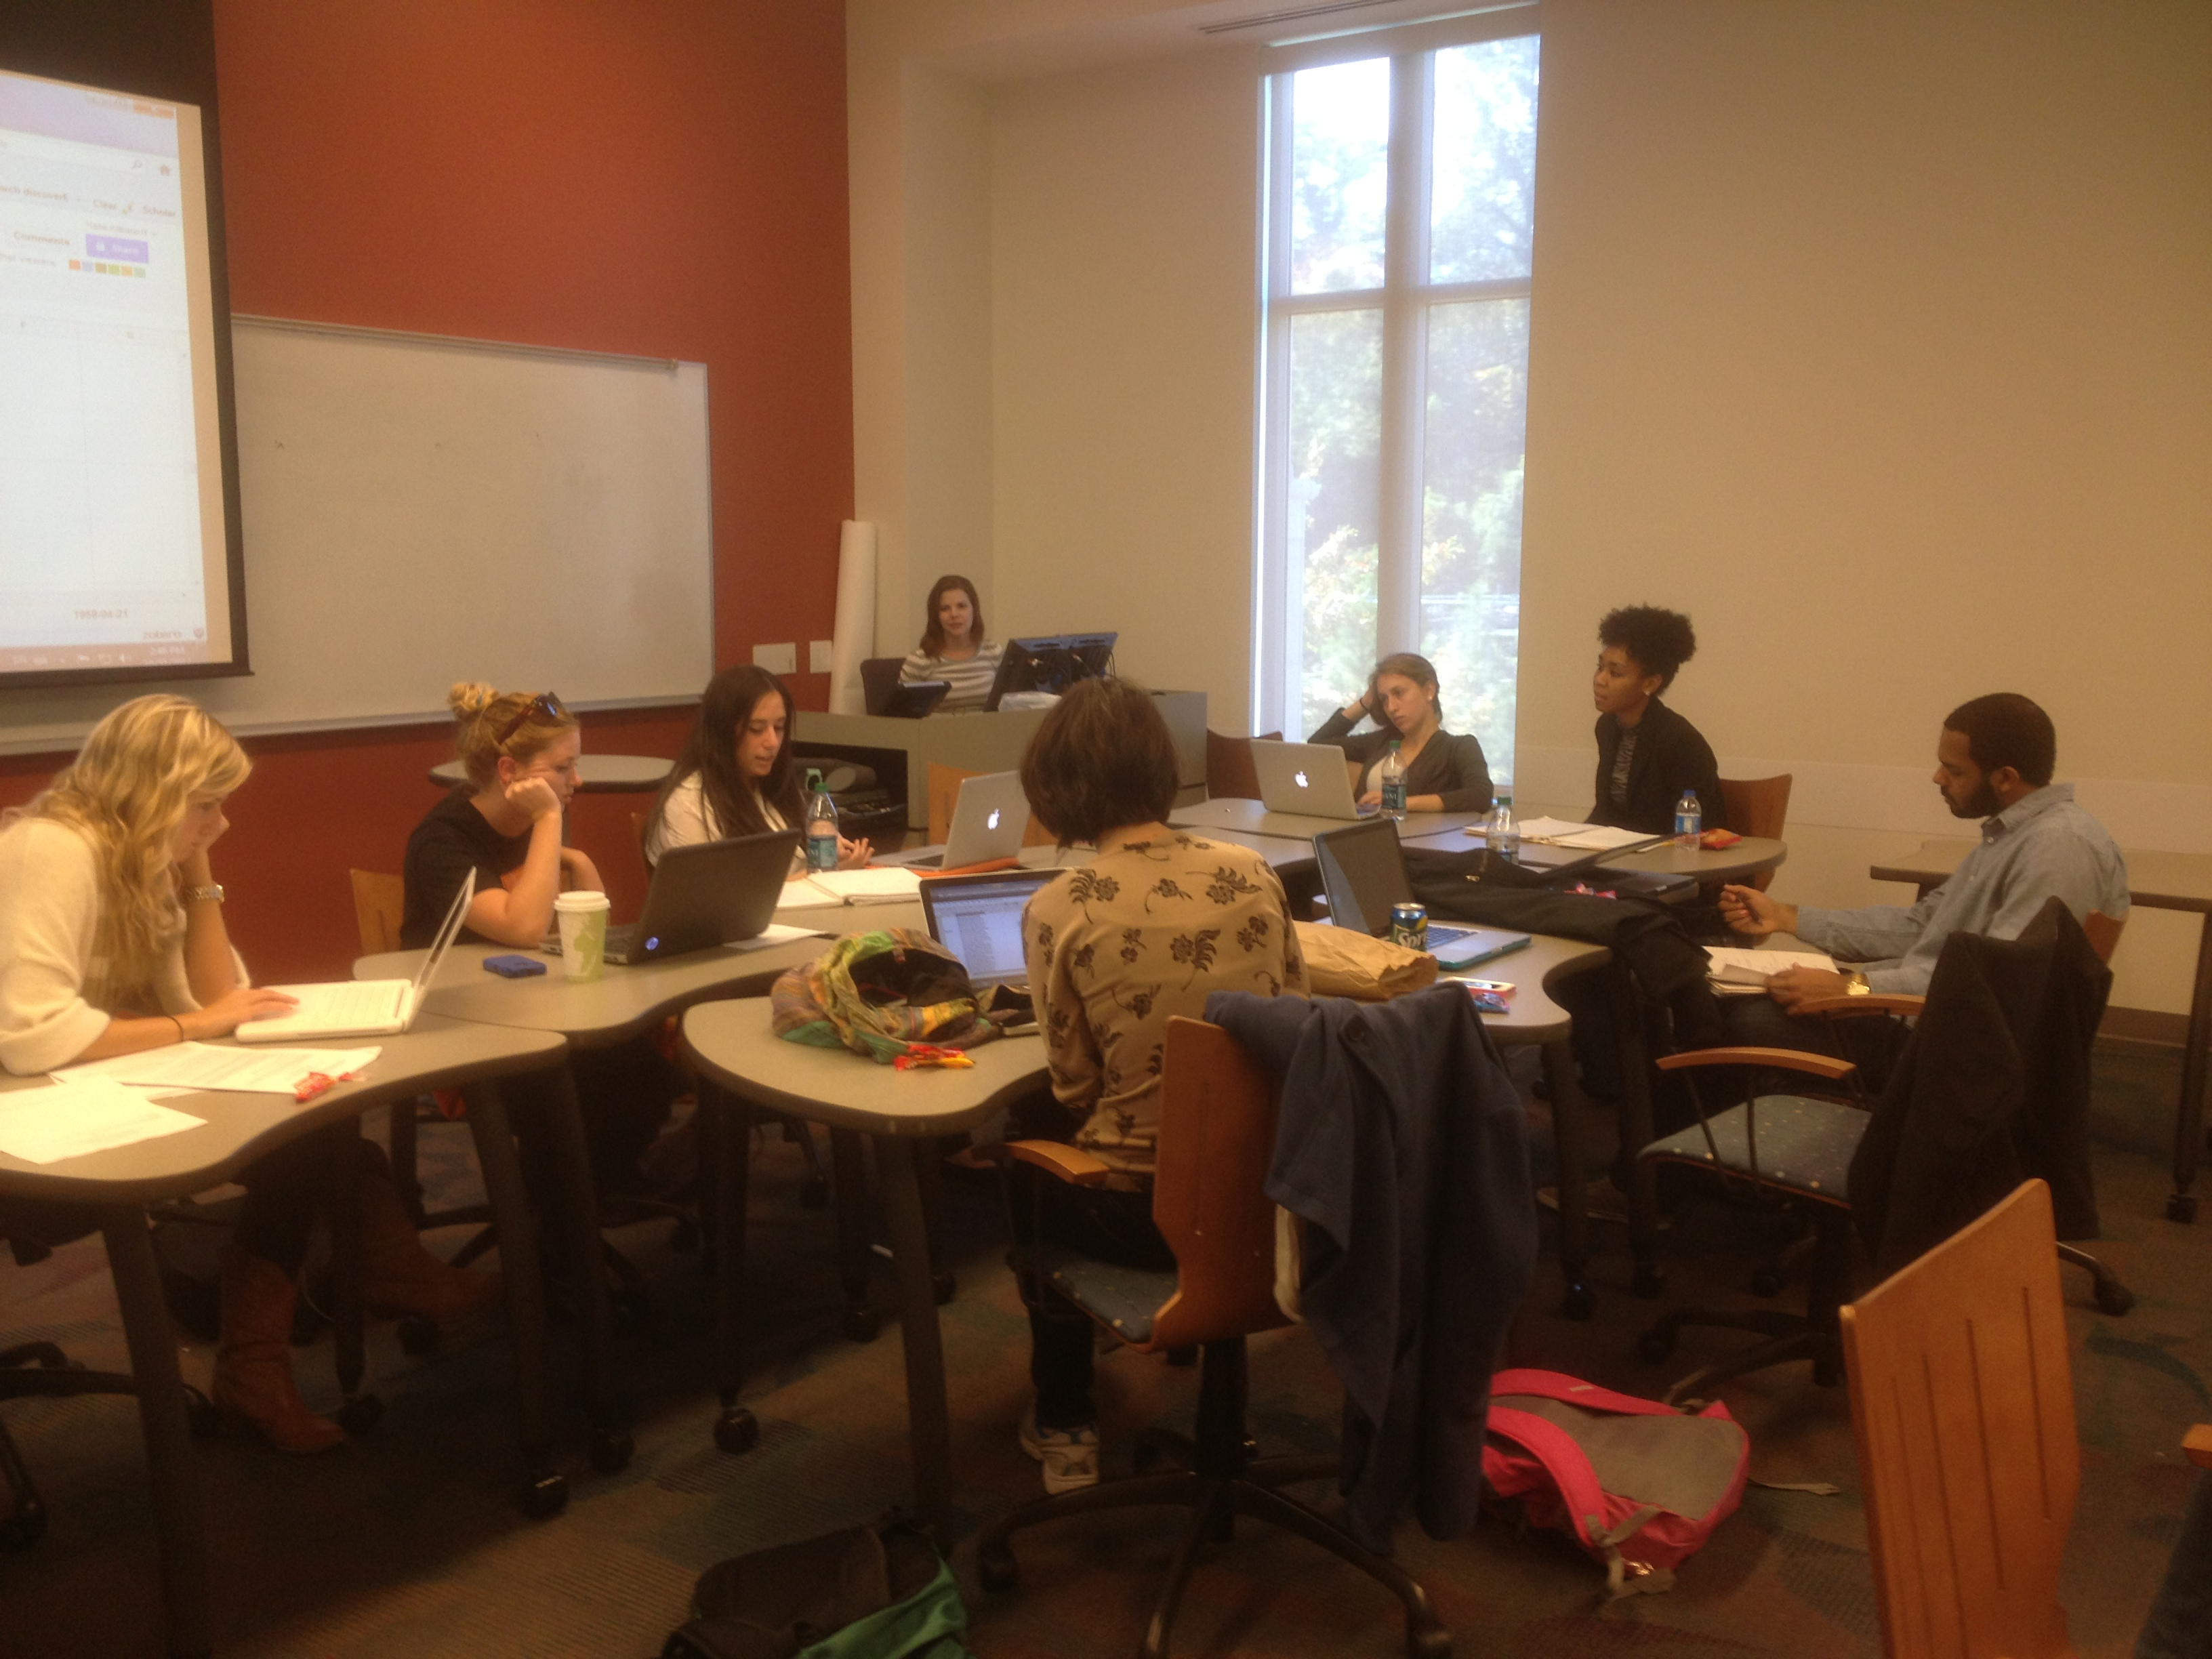 Cold case students in fall 2012 workshop their findings in Brazier case.